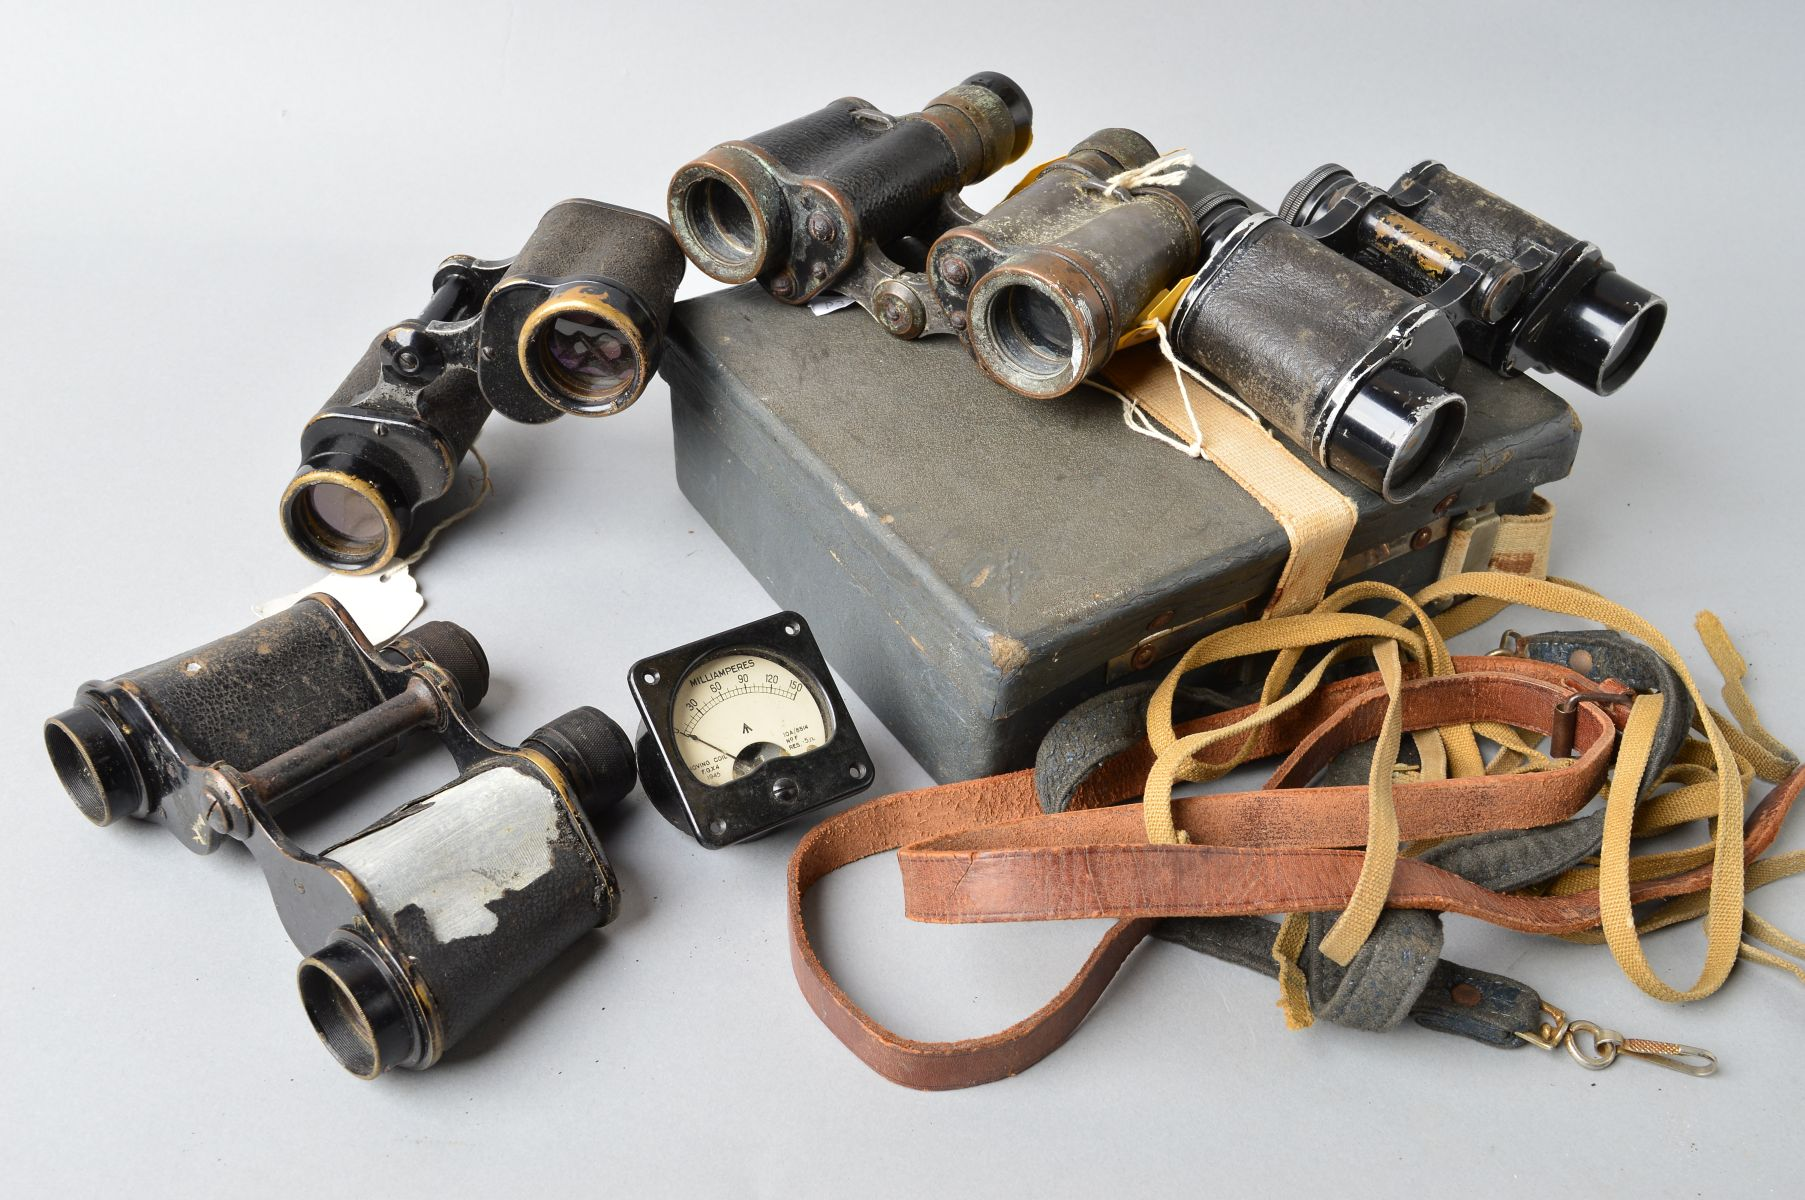 Lot 454 - A BOX CONTAINING FIVE PAIRS OF MILITARY ISSUE FIELD BINOCULARS, as follows, Taylor Hobson, 6 x 30